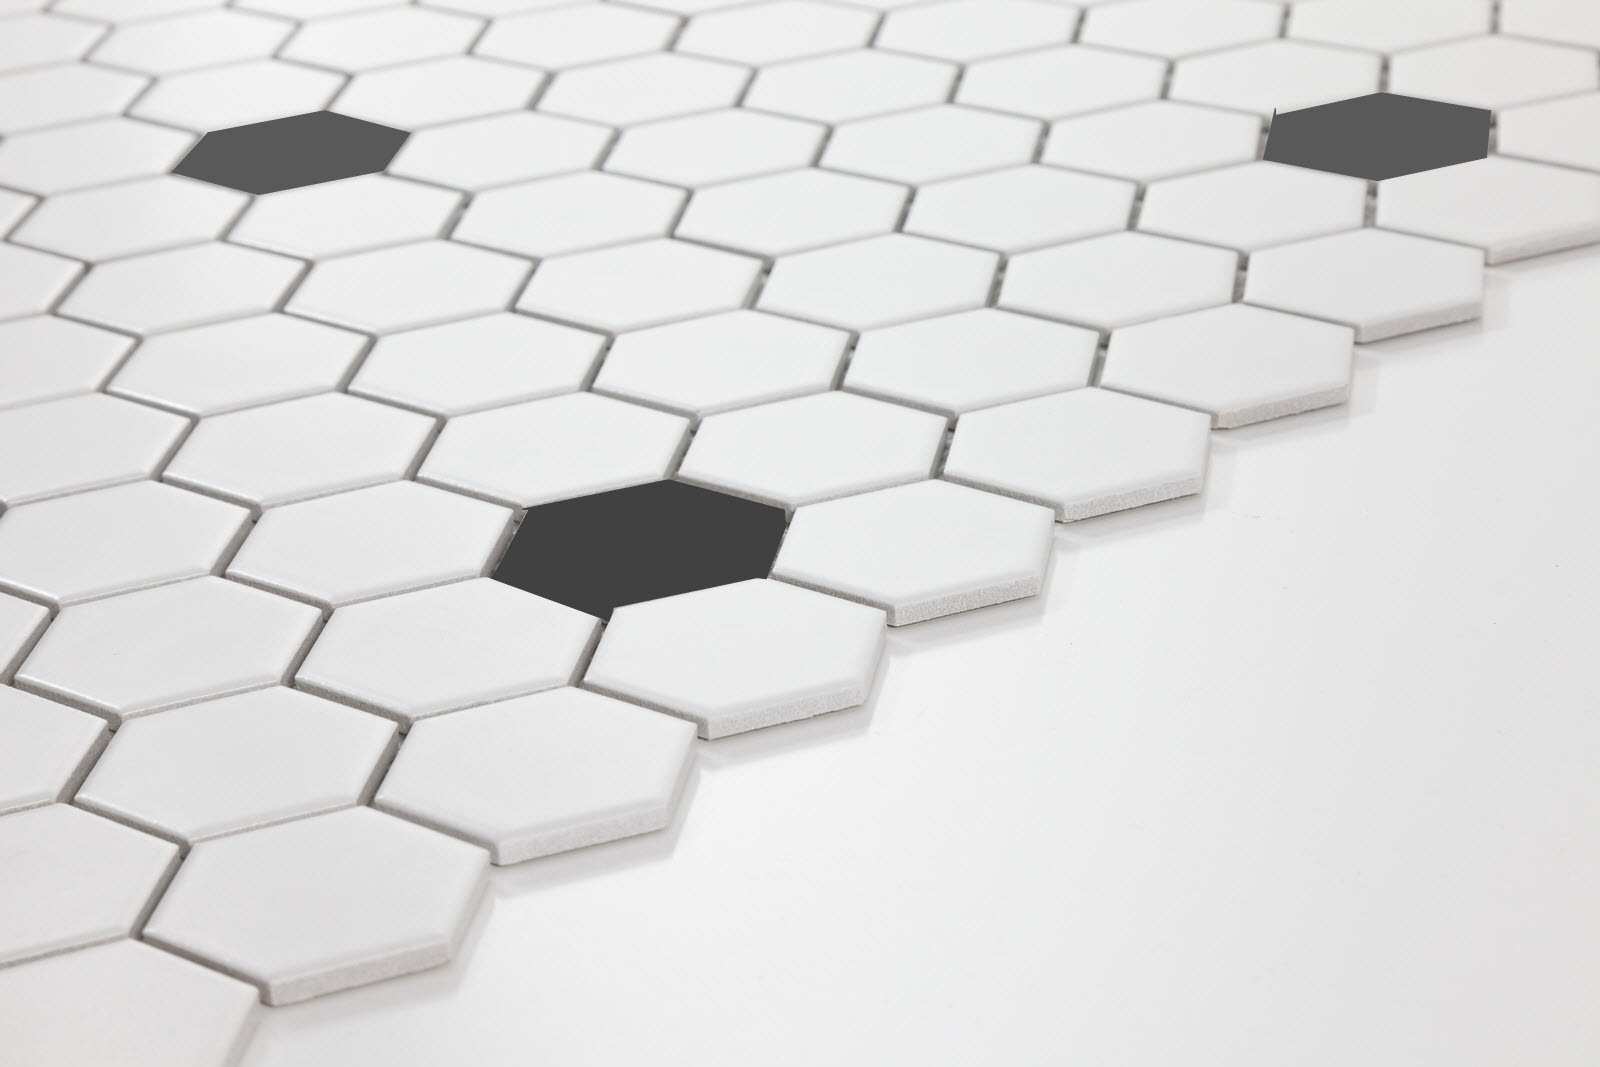 Meanwhile back in the kitchen part iv floored and walled two inch white hexagon tile with black insets but not too many black dailygadgetfo Choice Image